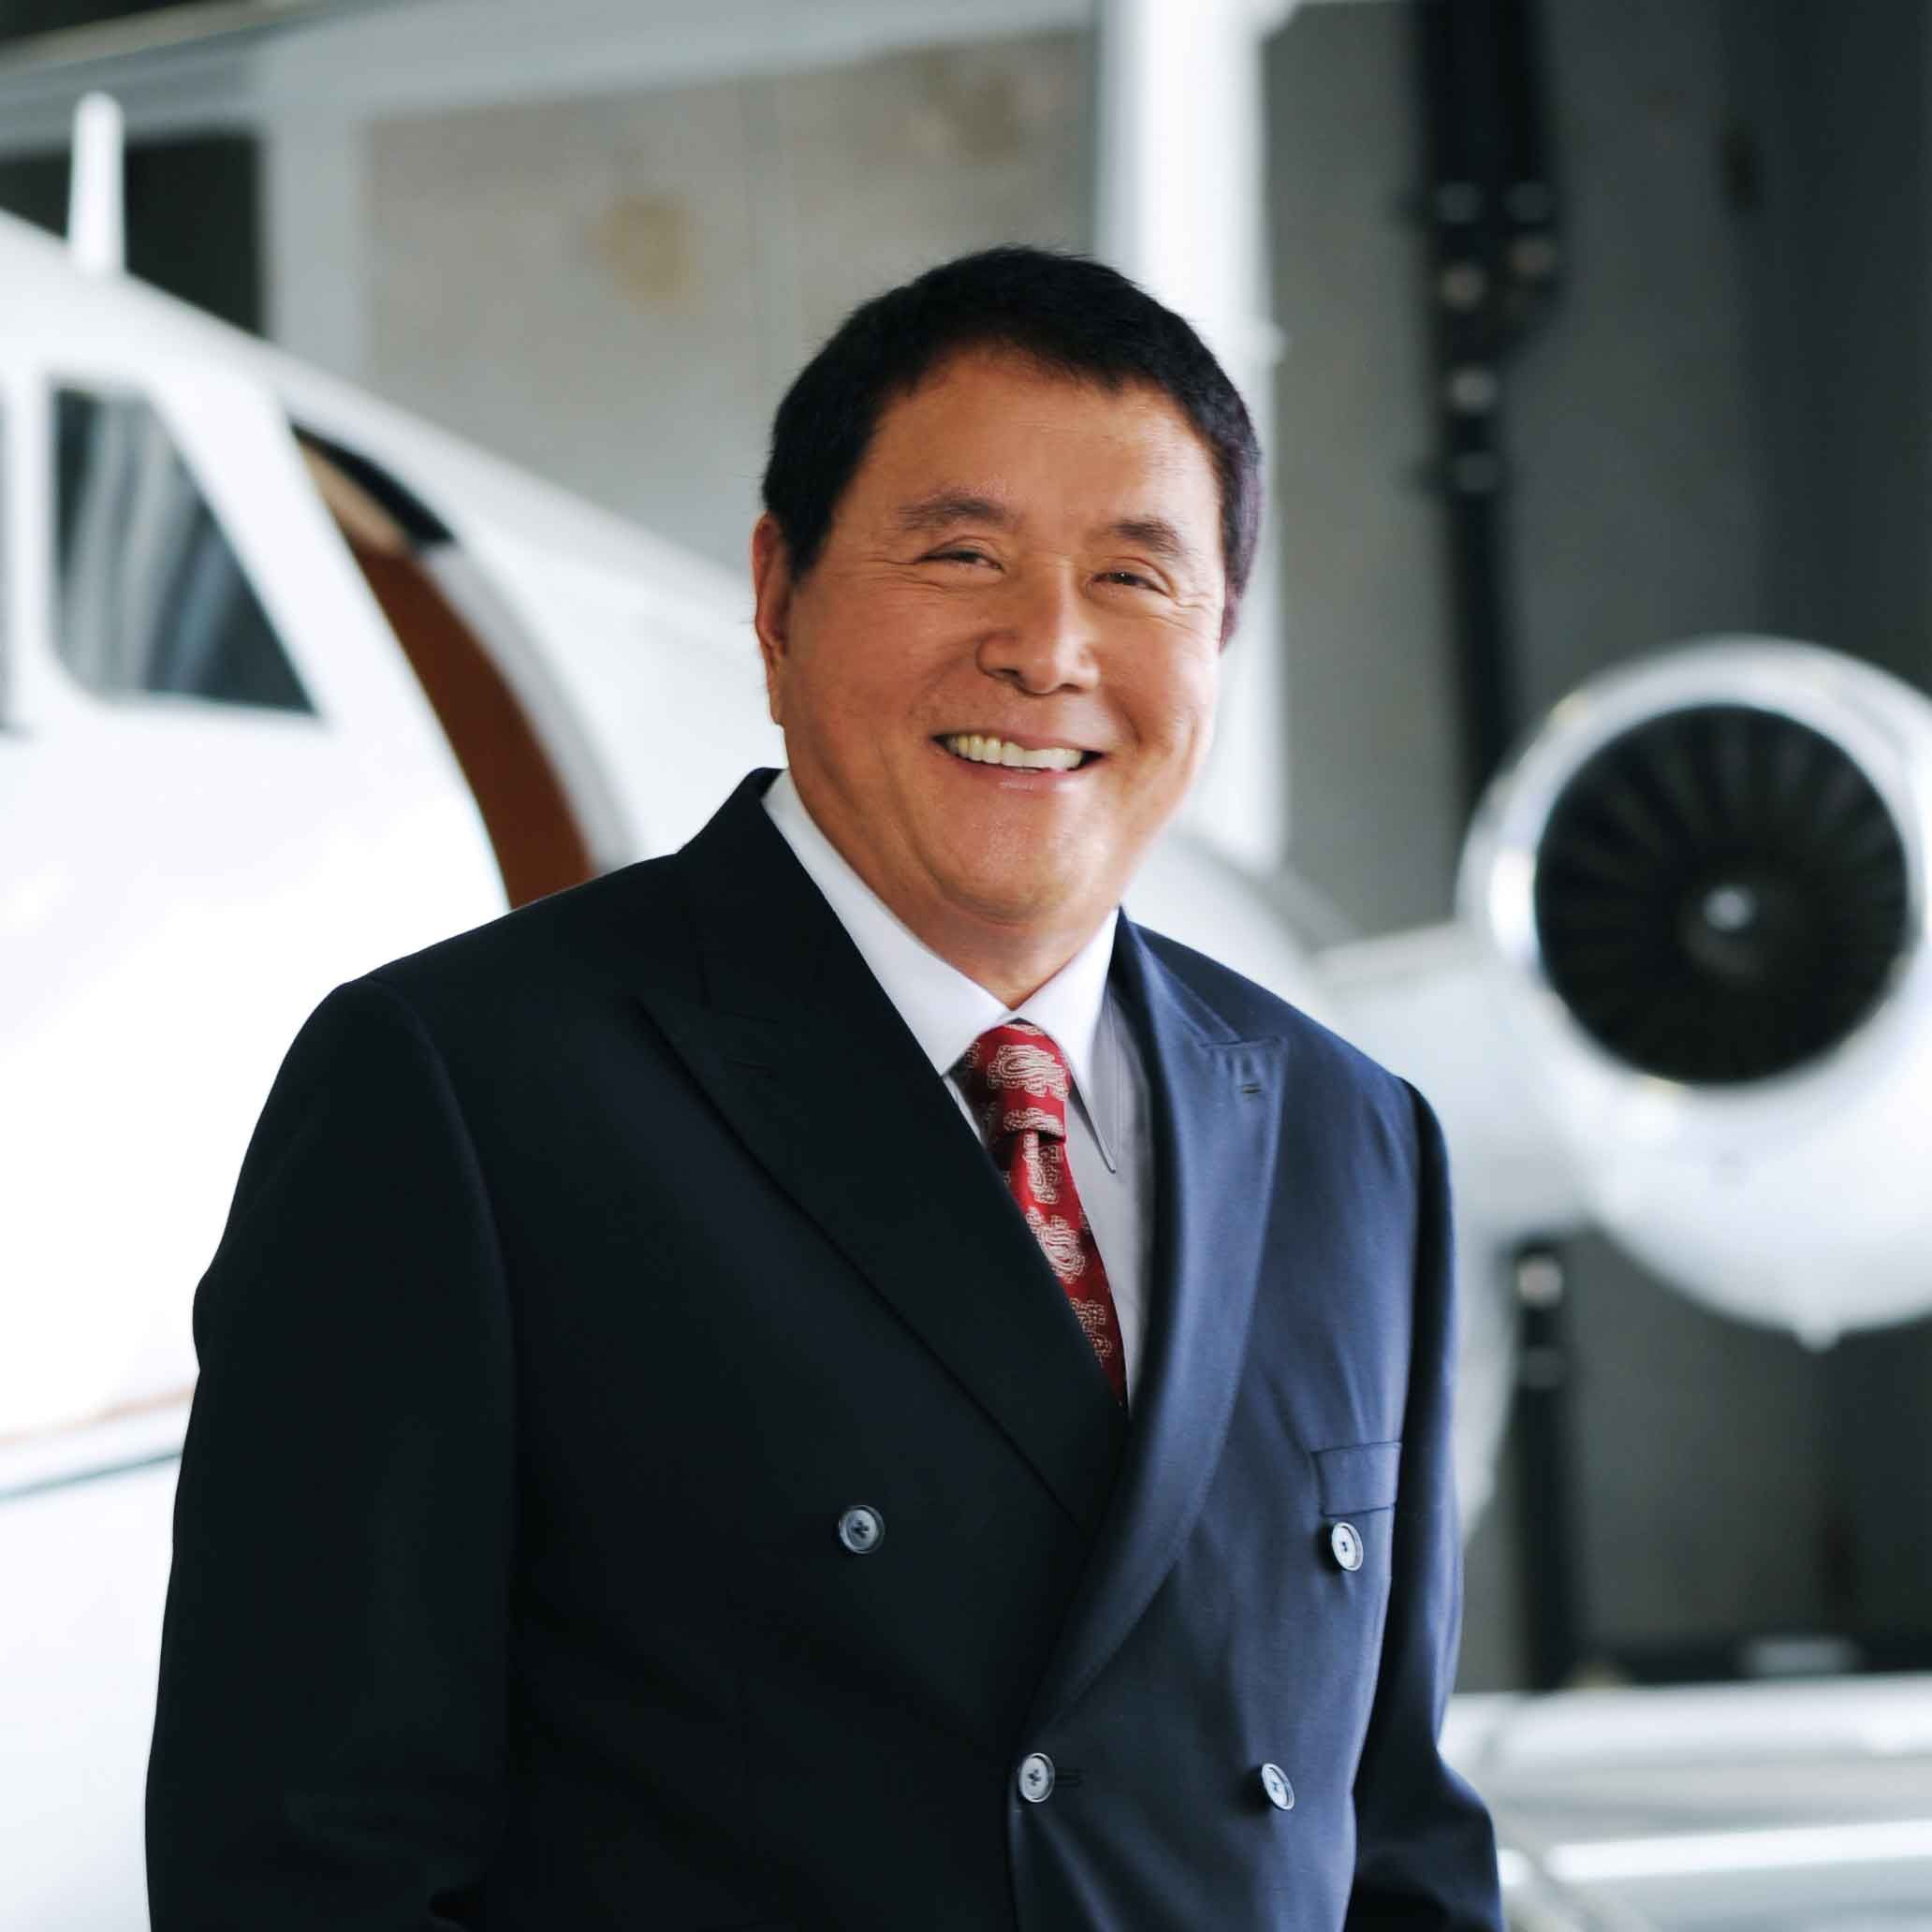 Robert Kiyosaki standing by a private jet in an airplane